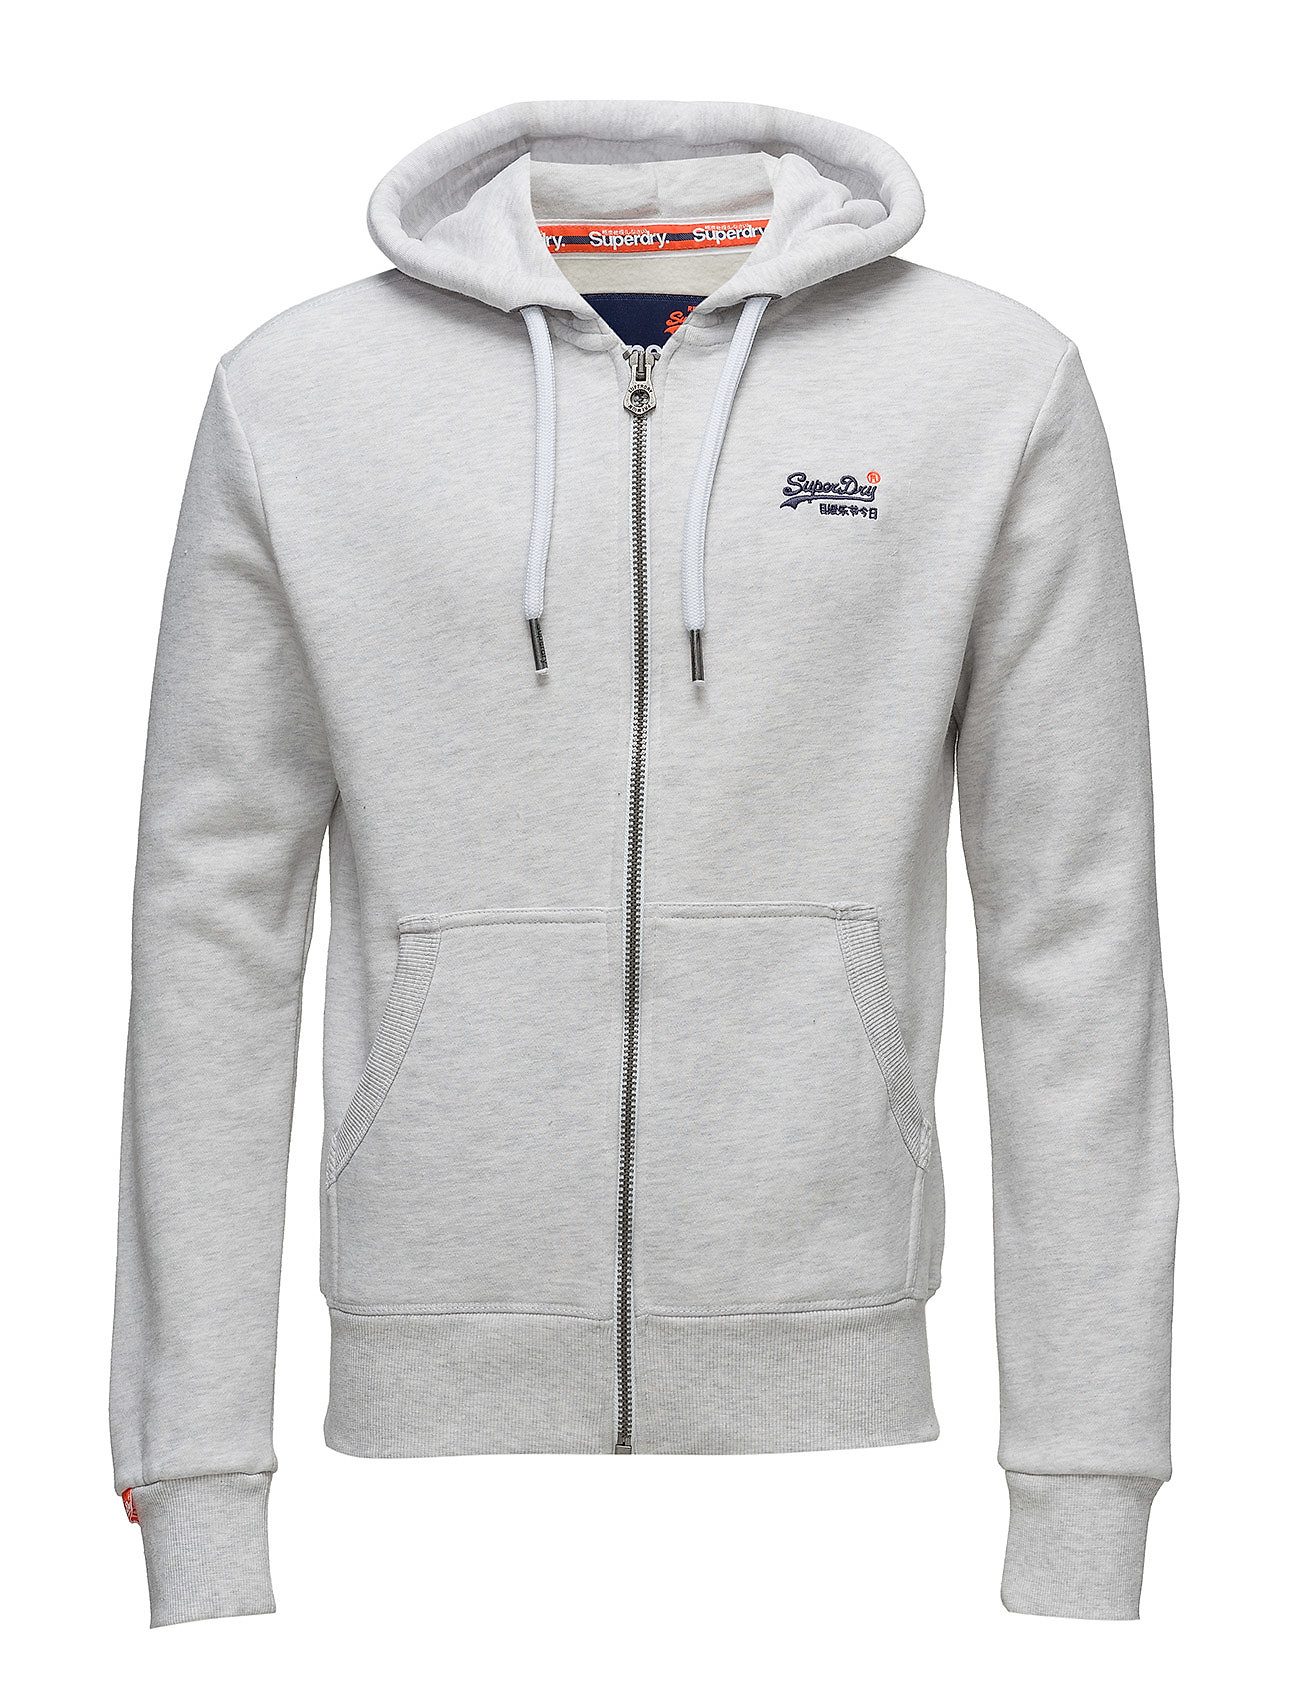 Superdry ORANGE LABEL ZIPHOOD - ICE MARL